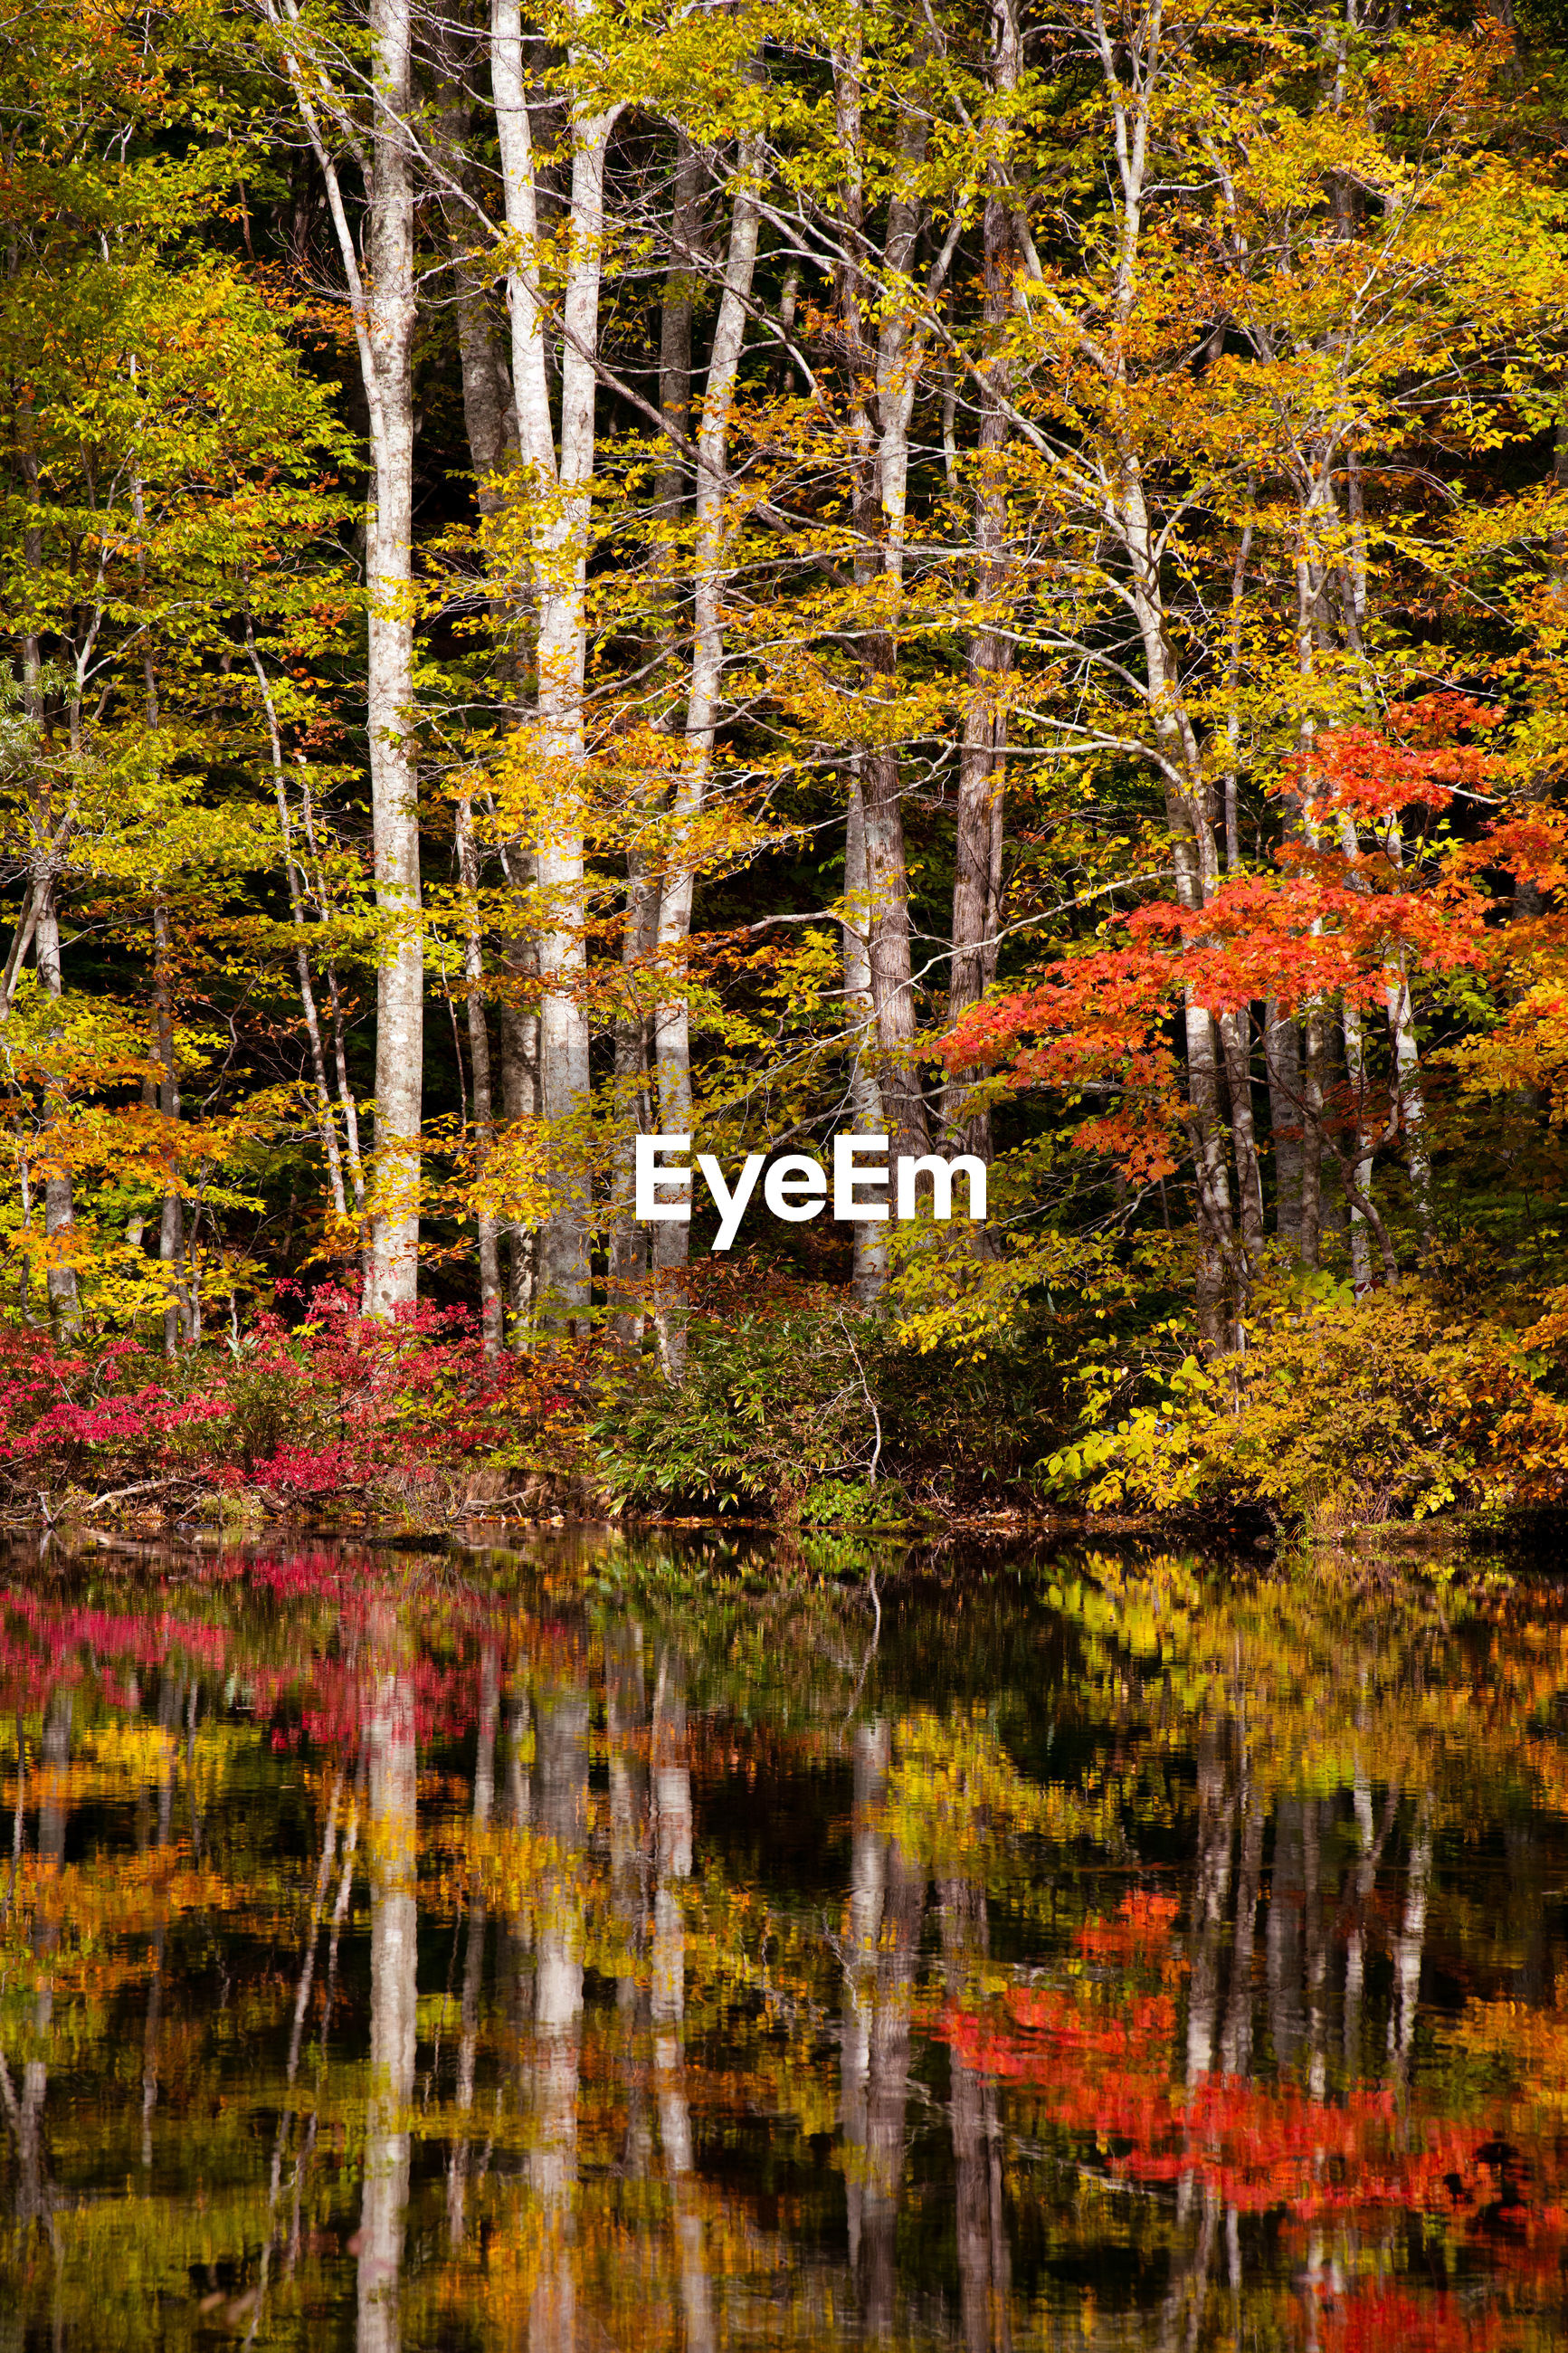 Trees by lake in forest during autumn